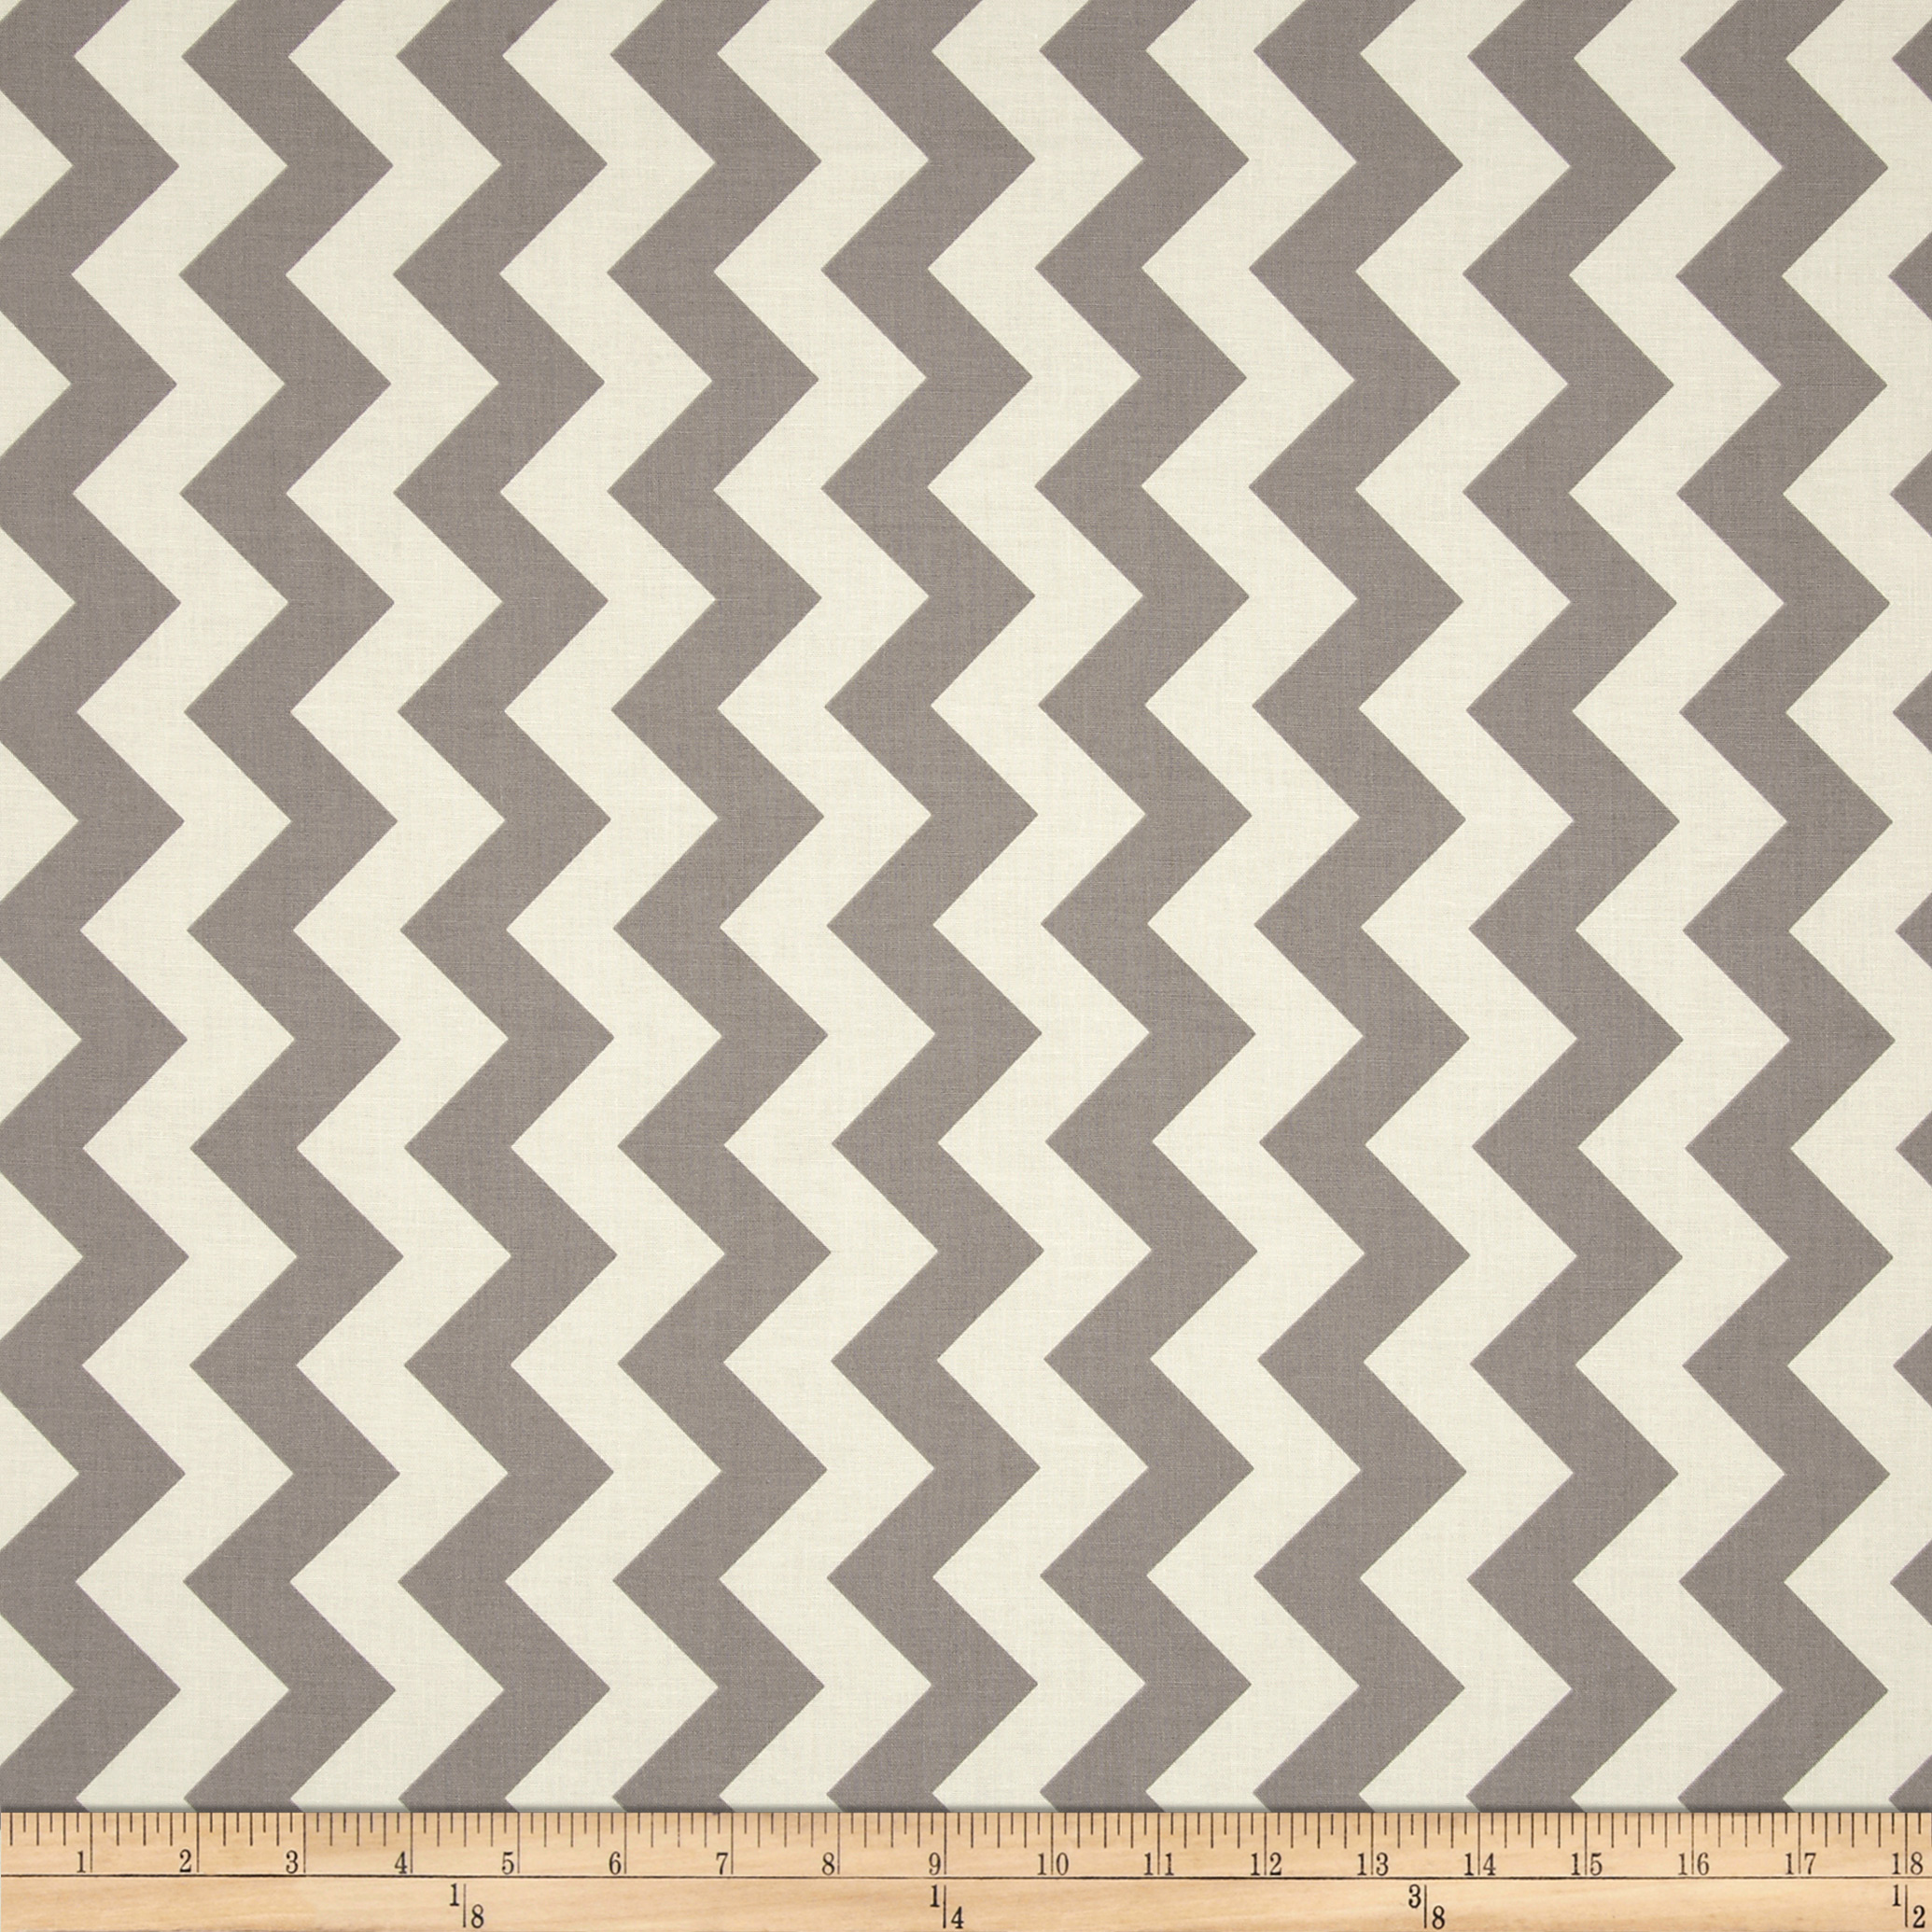 Riley Blake Le Creme Basics Chevron Grey/Cream Fabric